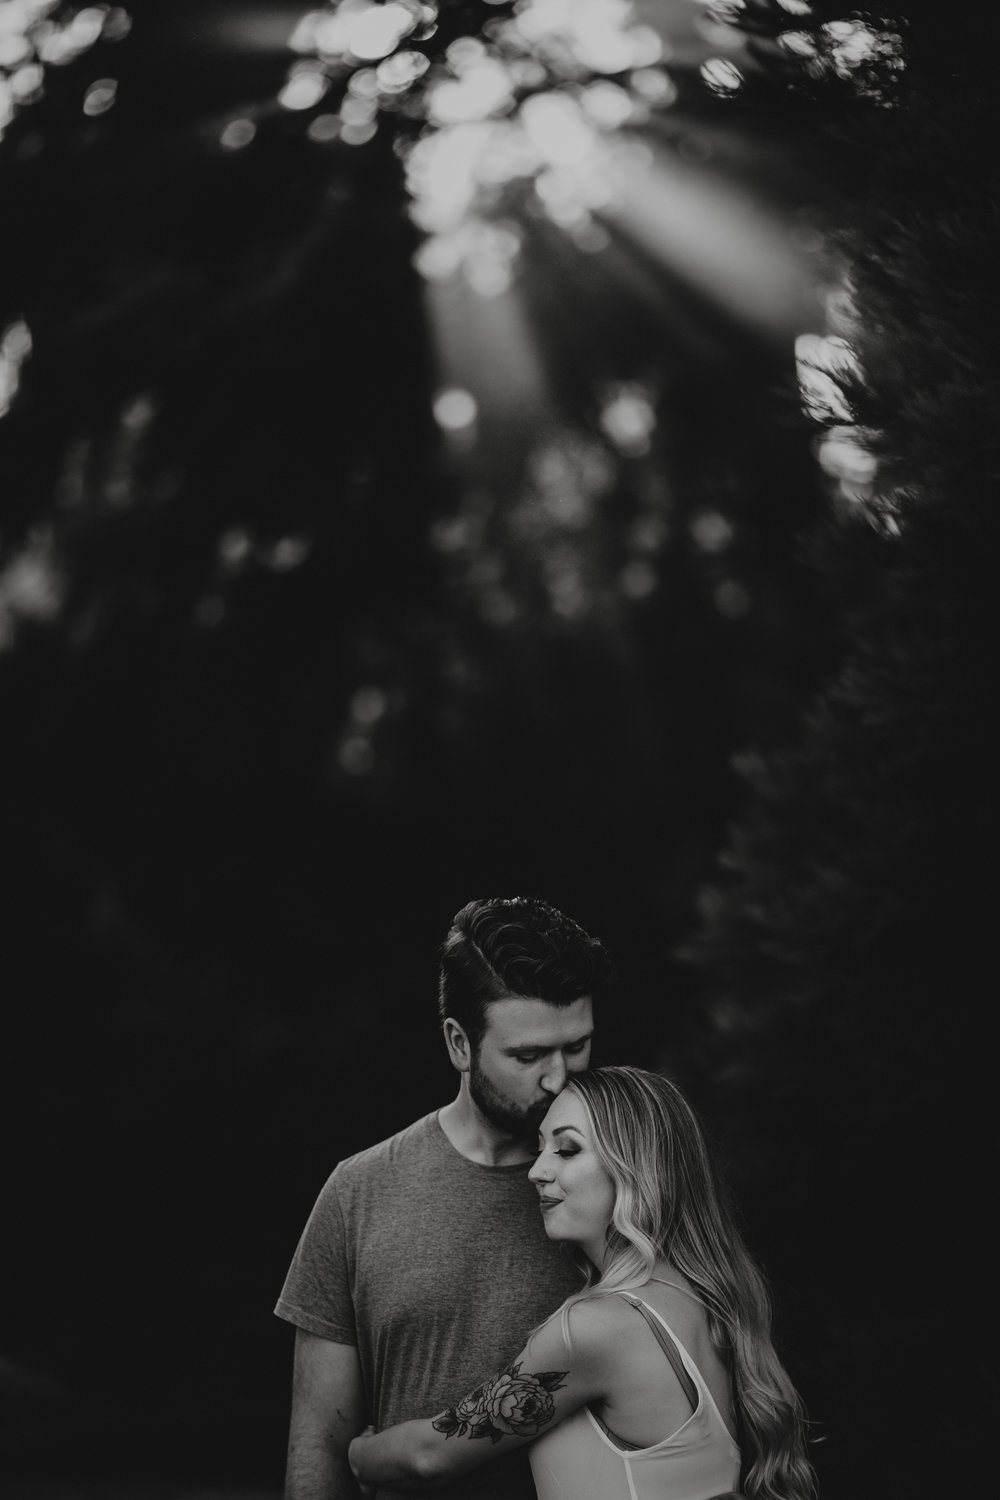 Alexandra-Evan-Engagement-105-1.jpg